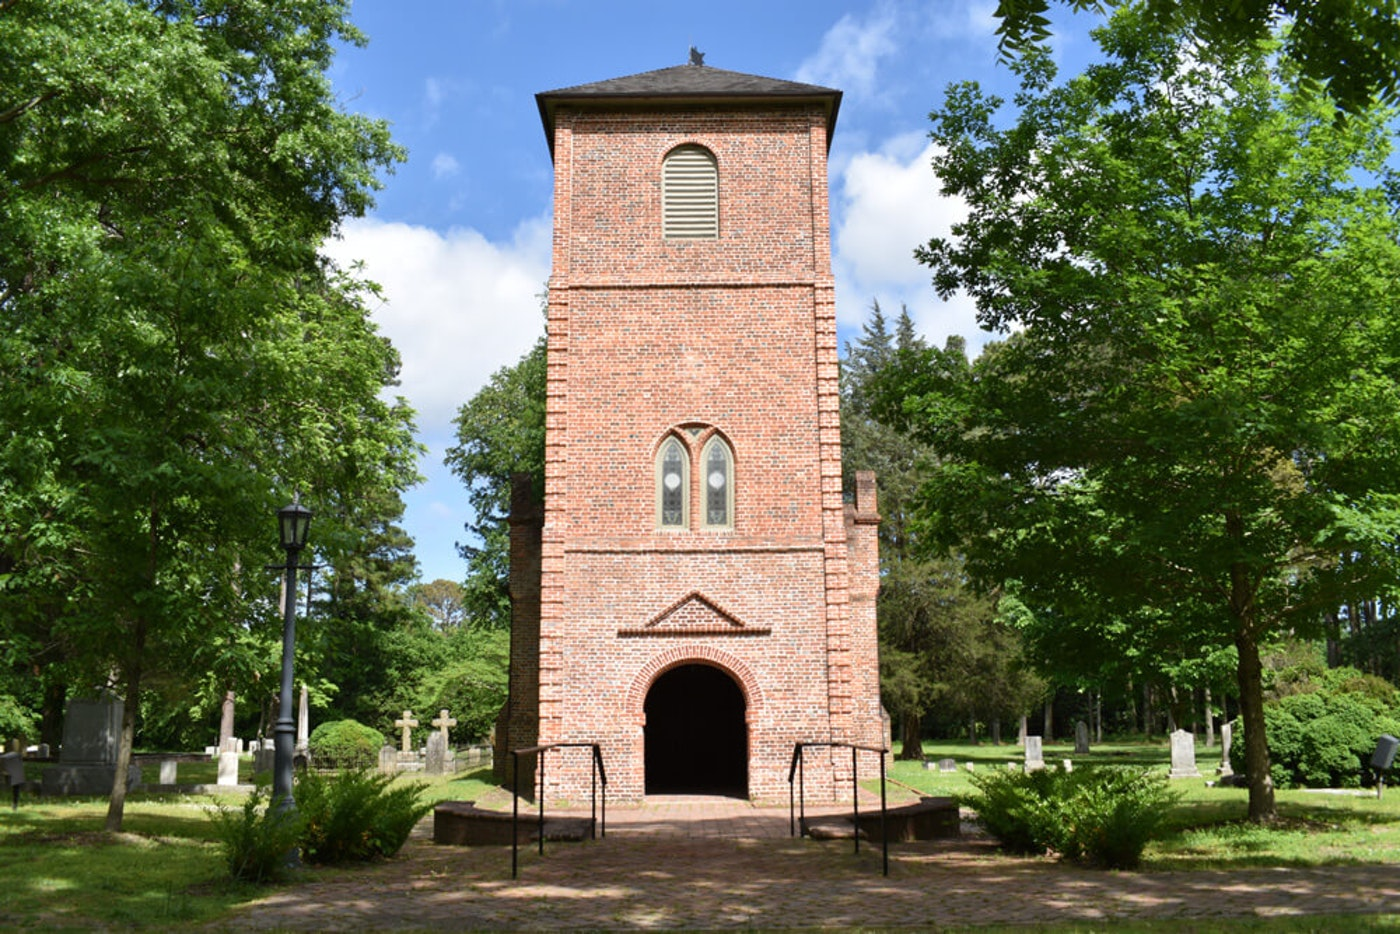 Photo contributed by St. Luke's Historic Church & Museum